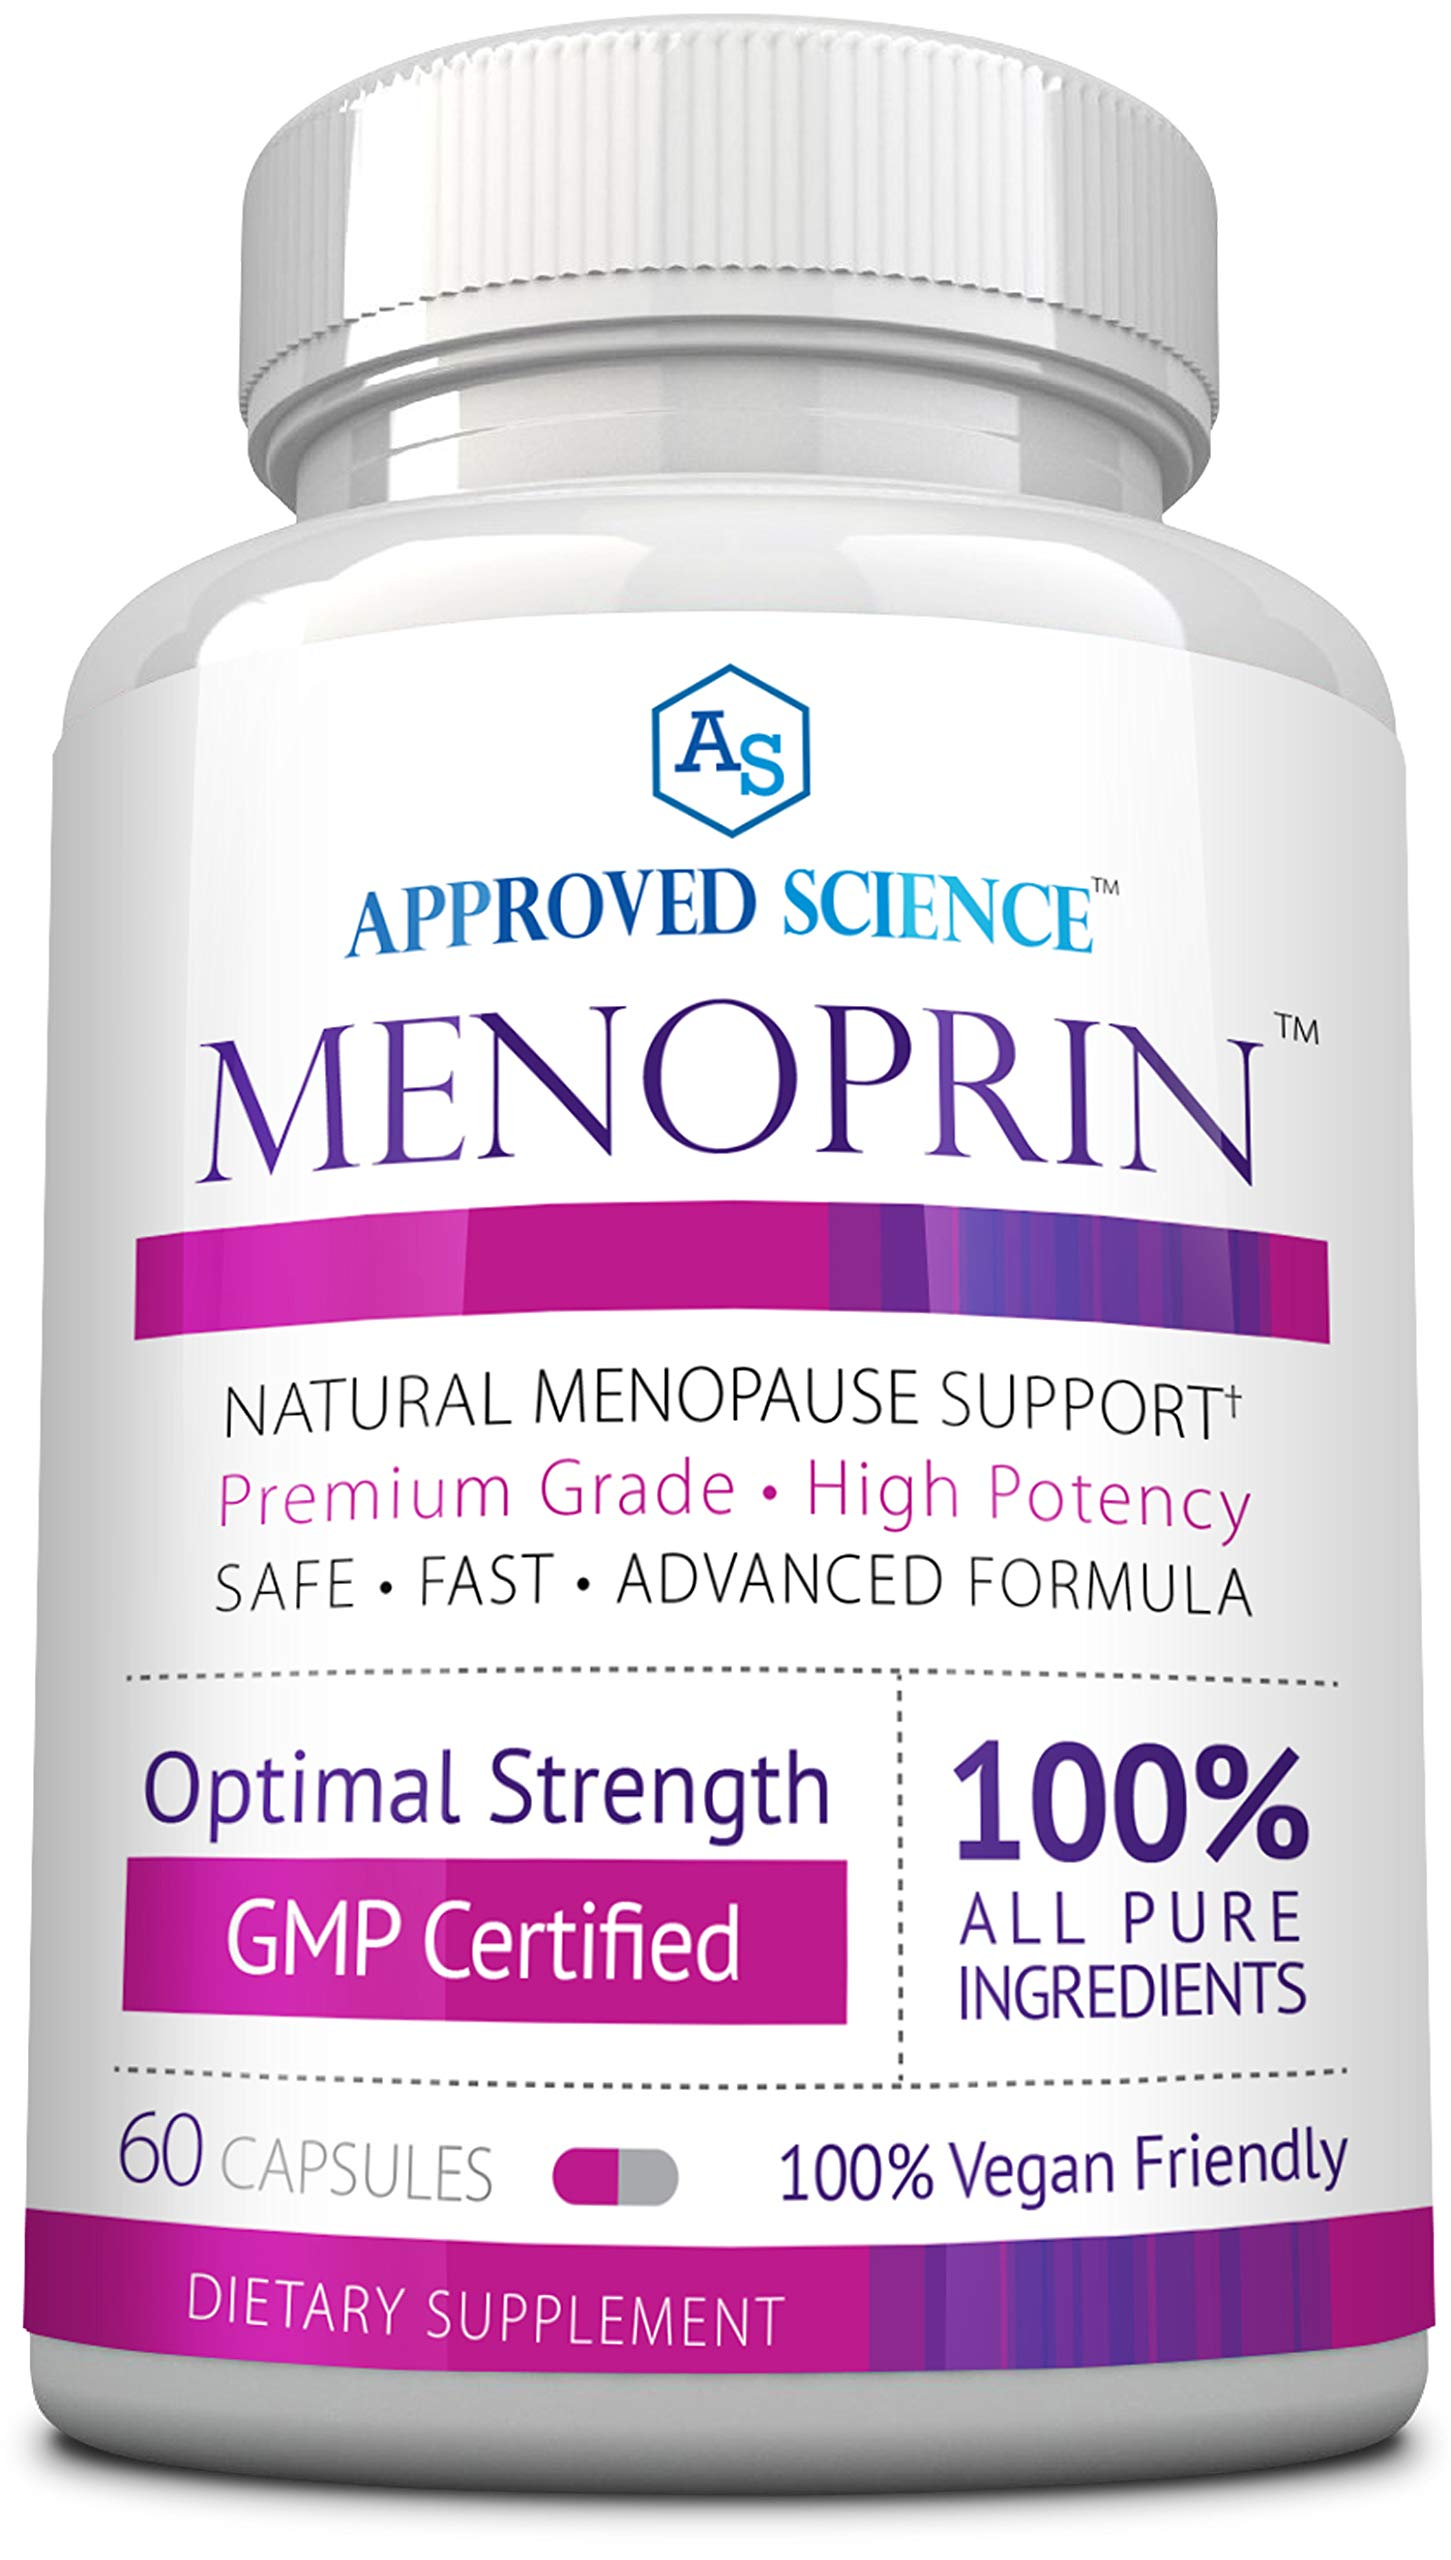 Menoprin - 1 Bottle (Day) by Approved Science